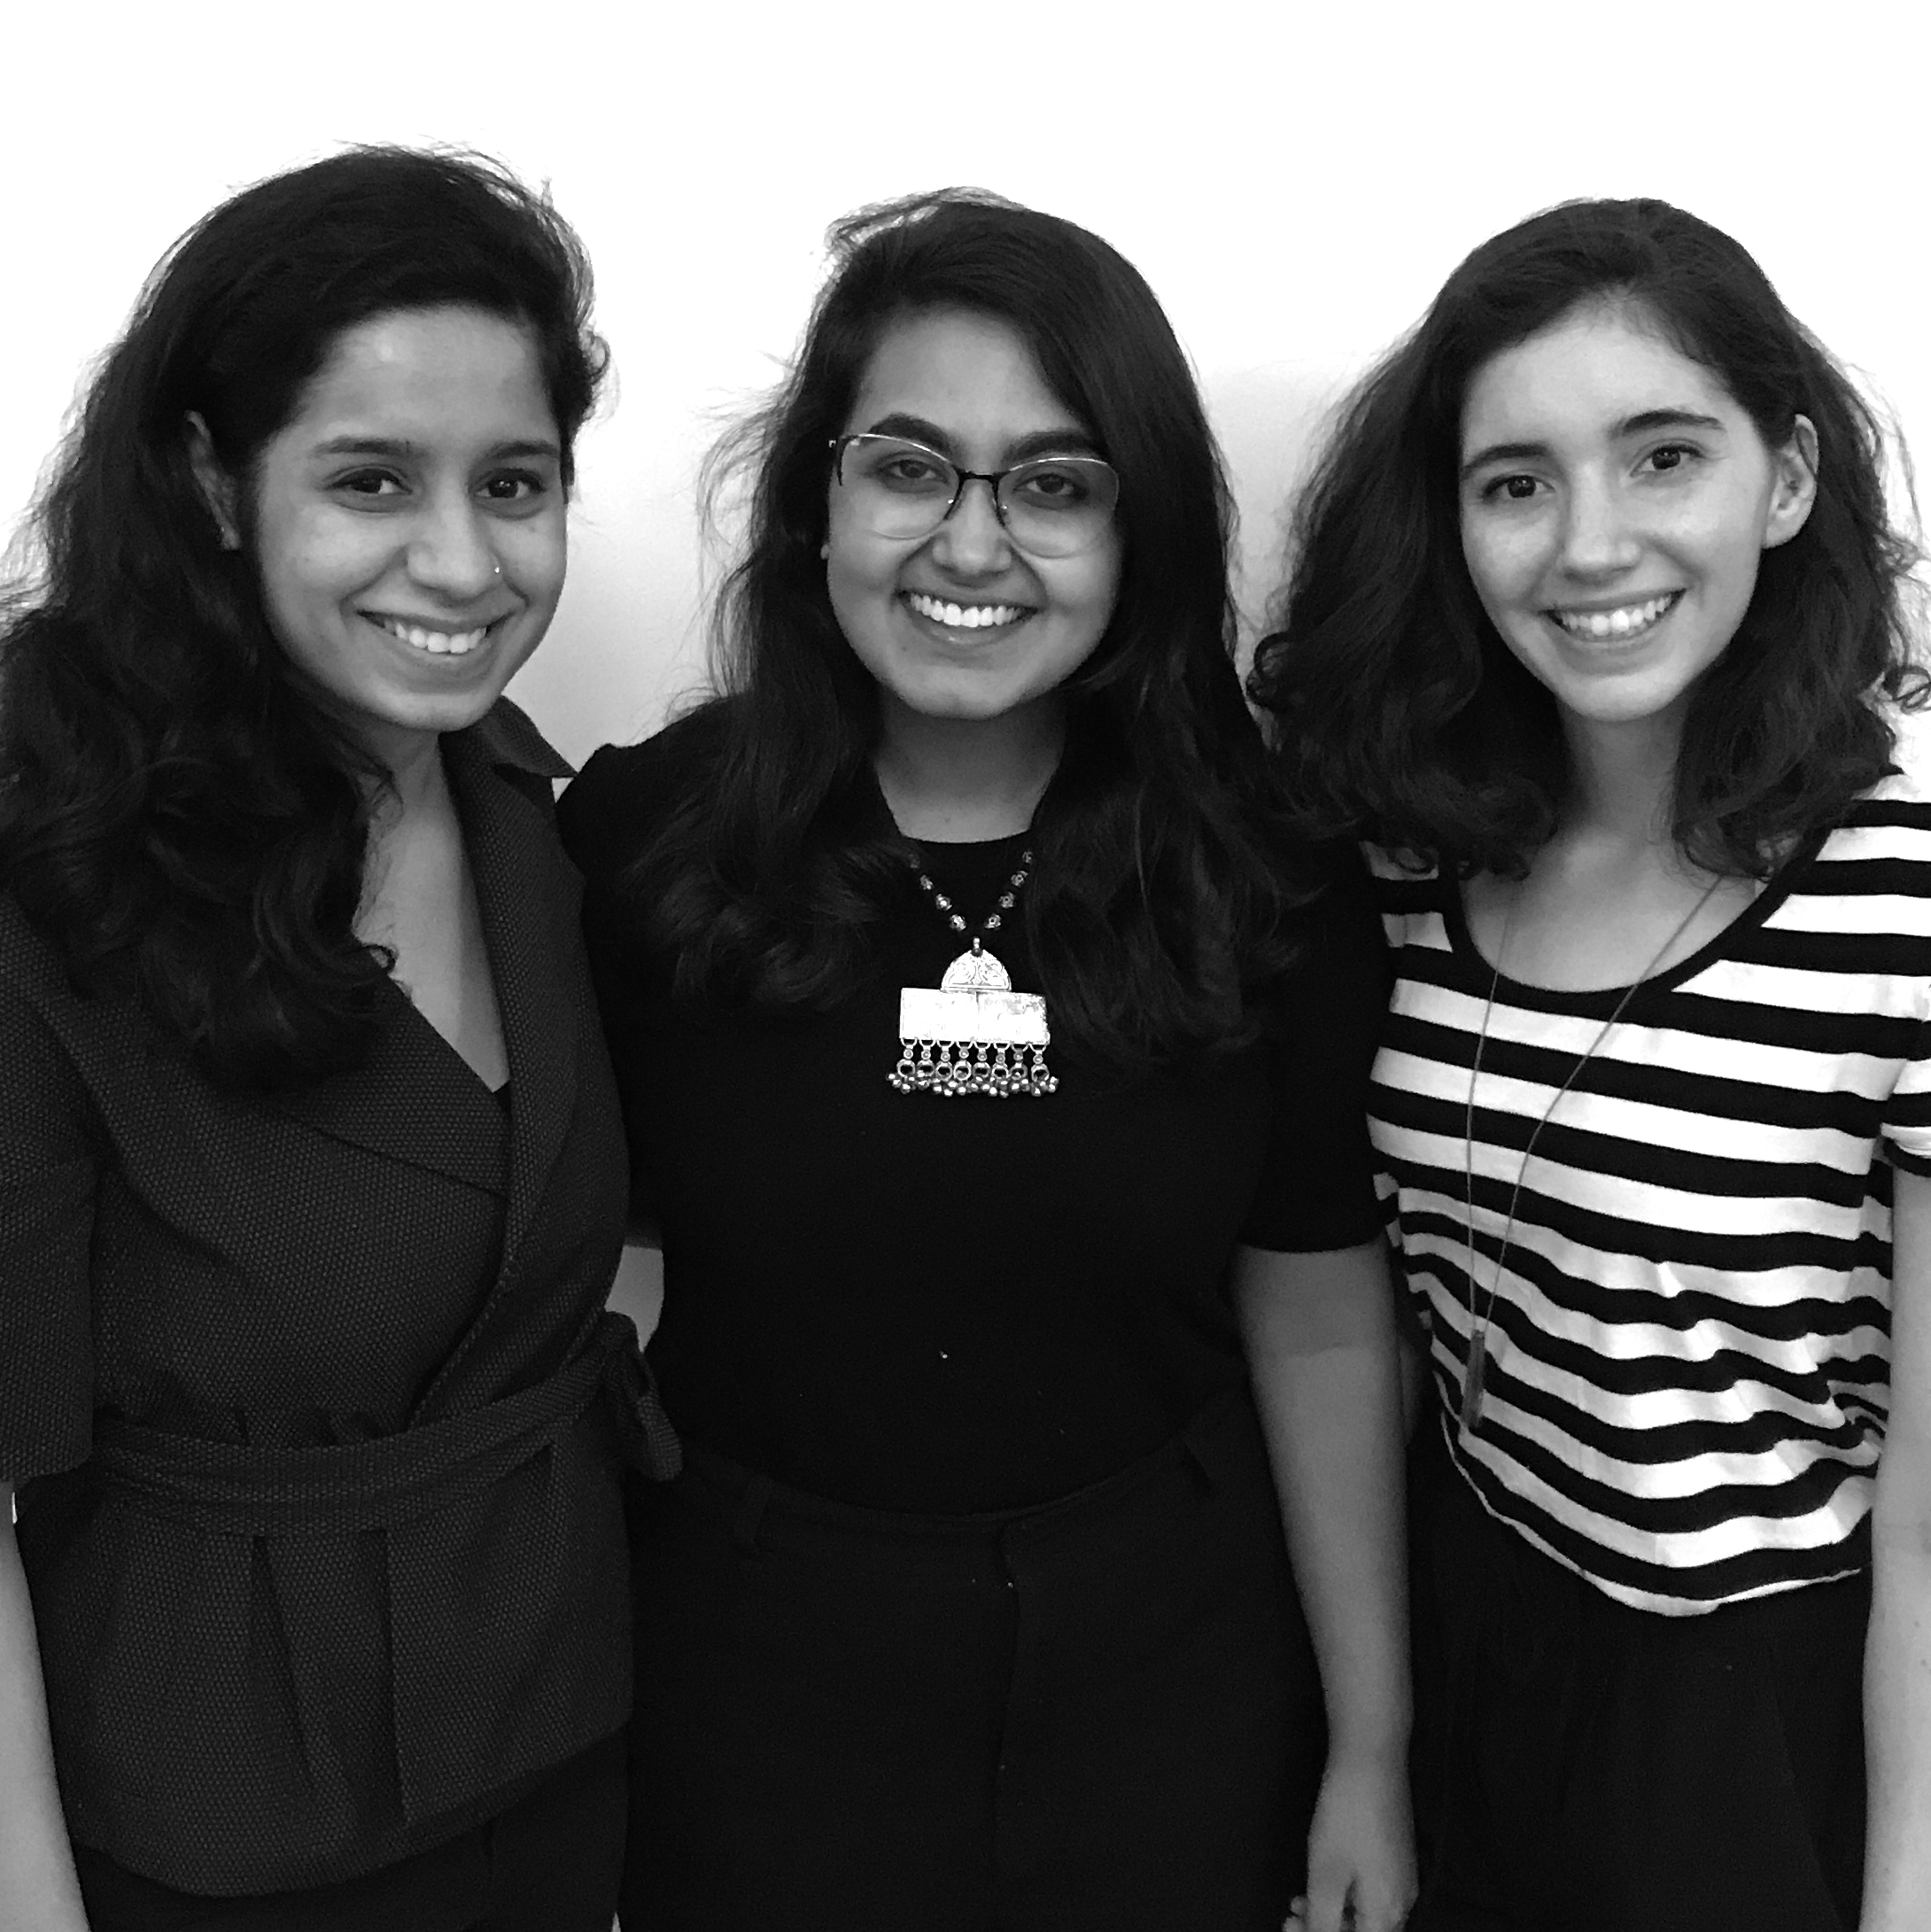 Team ATTA   Tanvi Kareer,Pragya Mahendru, and Eda Tankal (left to right) are recent graduates of SVA's MFA in Design for Social Innovation with backgrounds in textile design,art and communication design, respectively. Their shared love of nature and passion to create sustainable products that challenge systemic social problems drives their team. Their venture aims to significantly reduce the resource input and waste output of disposable tableware.   Website:  pragyamahendru.com